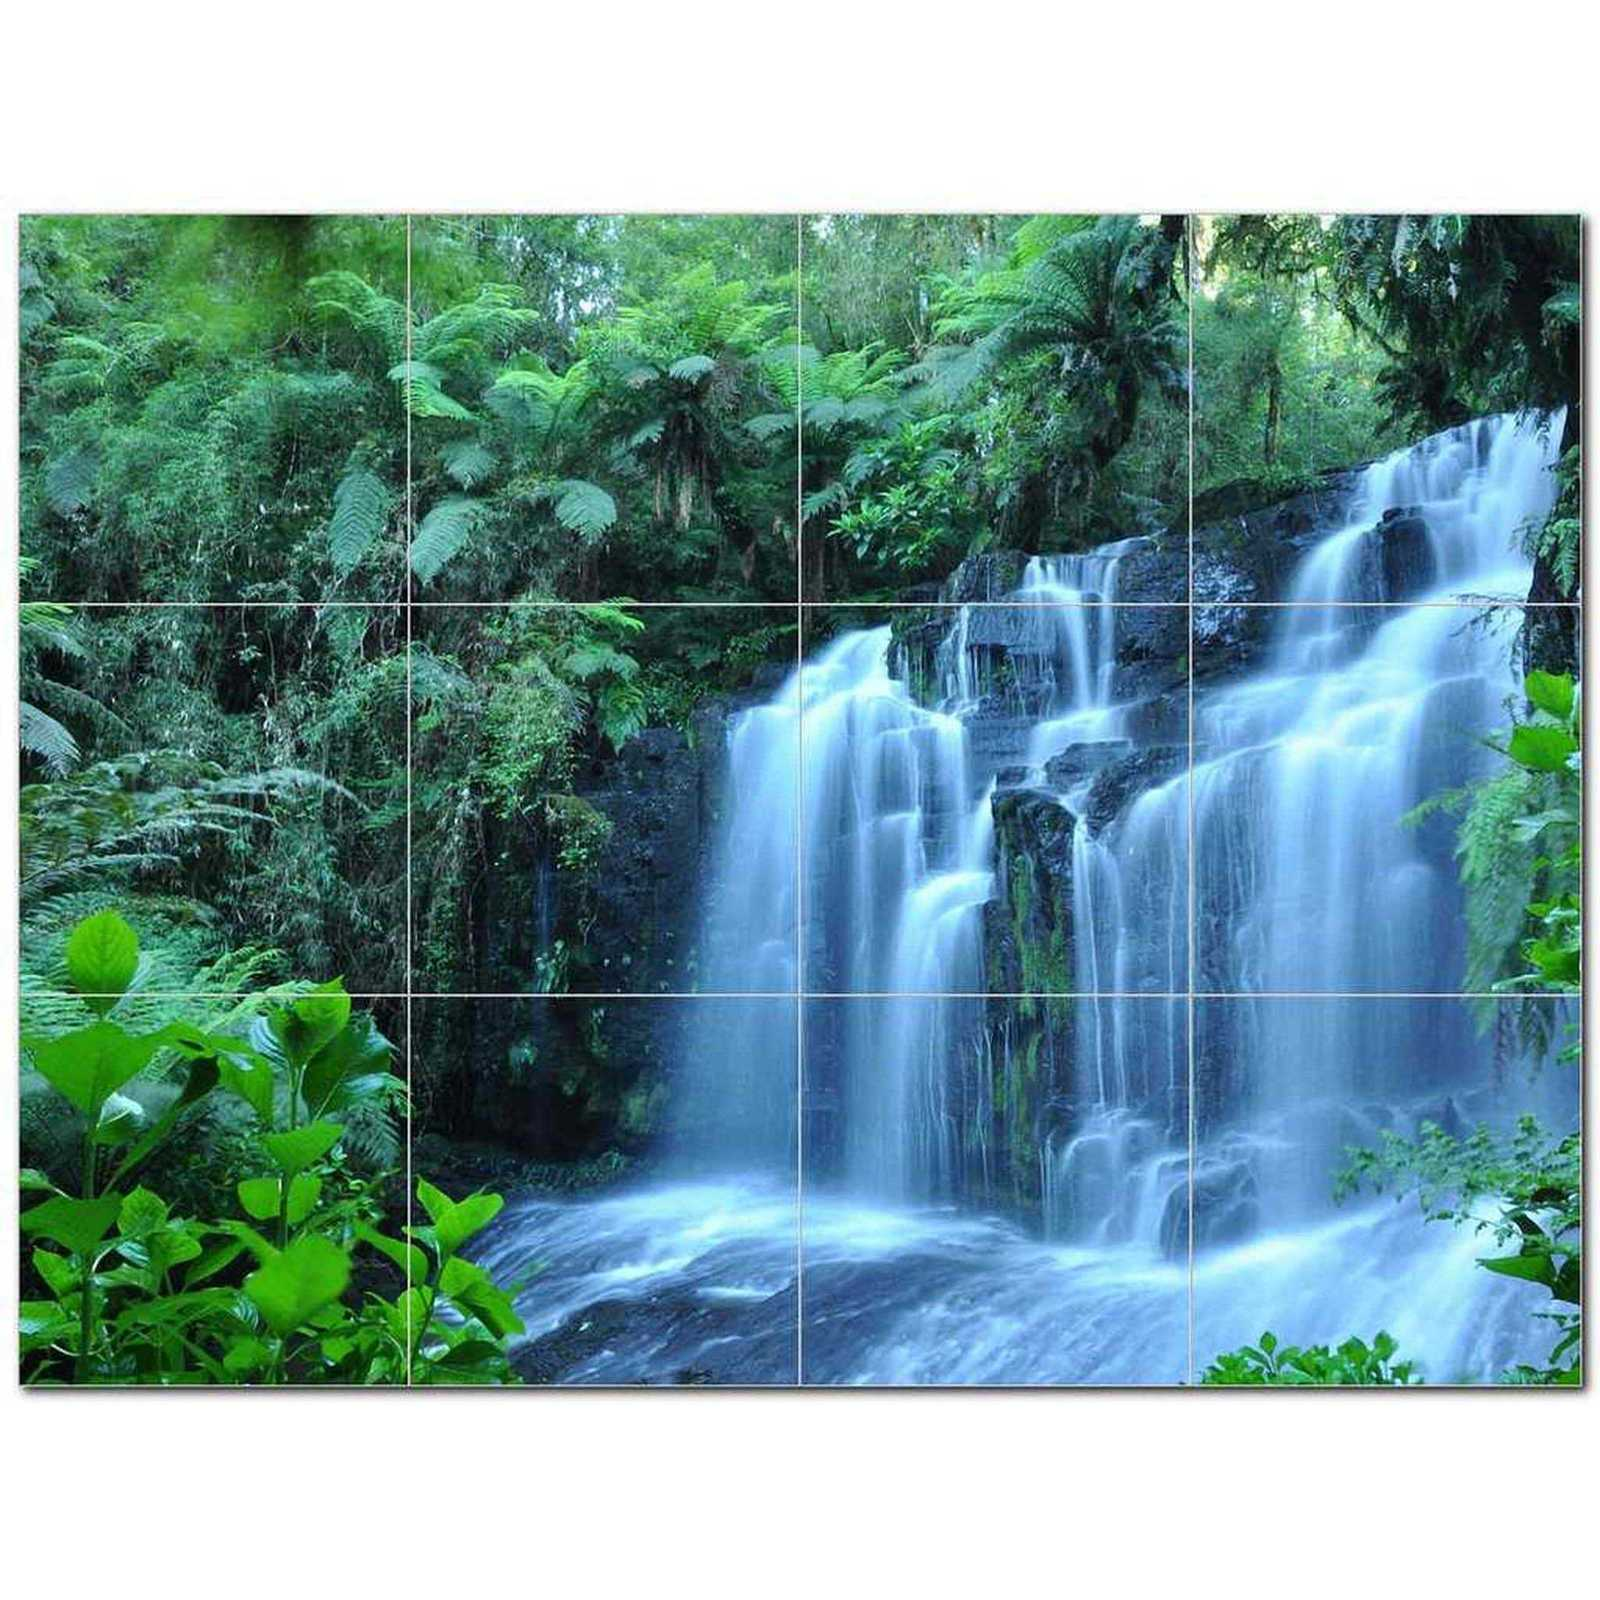 Primary image for Waterfall Photo Ceramic Tile Mural Kitchen Backsplash Bathroom Shower BAZ406126